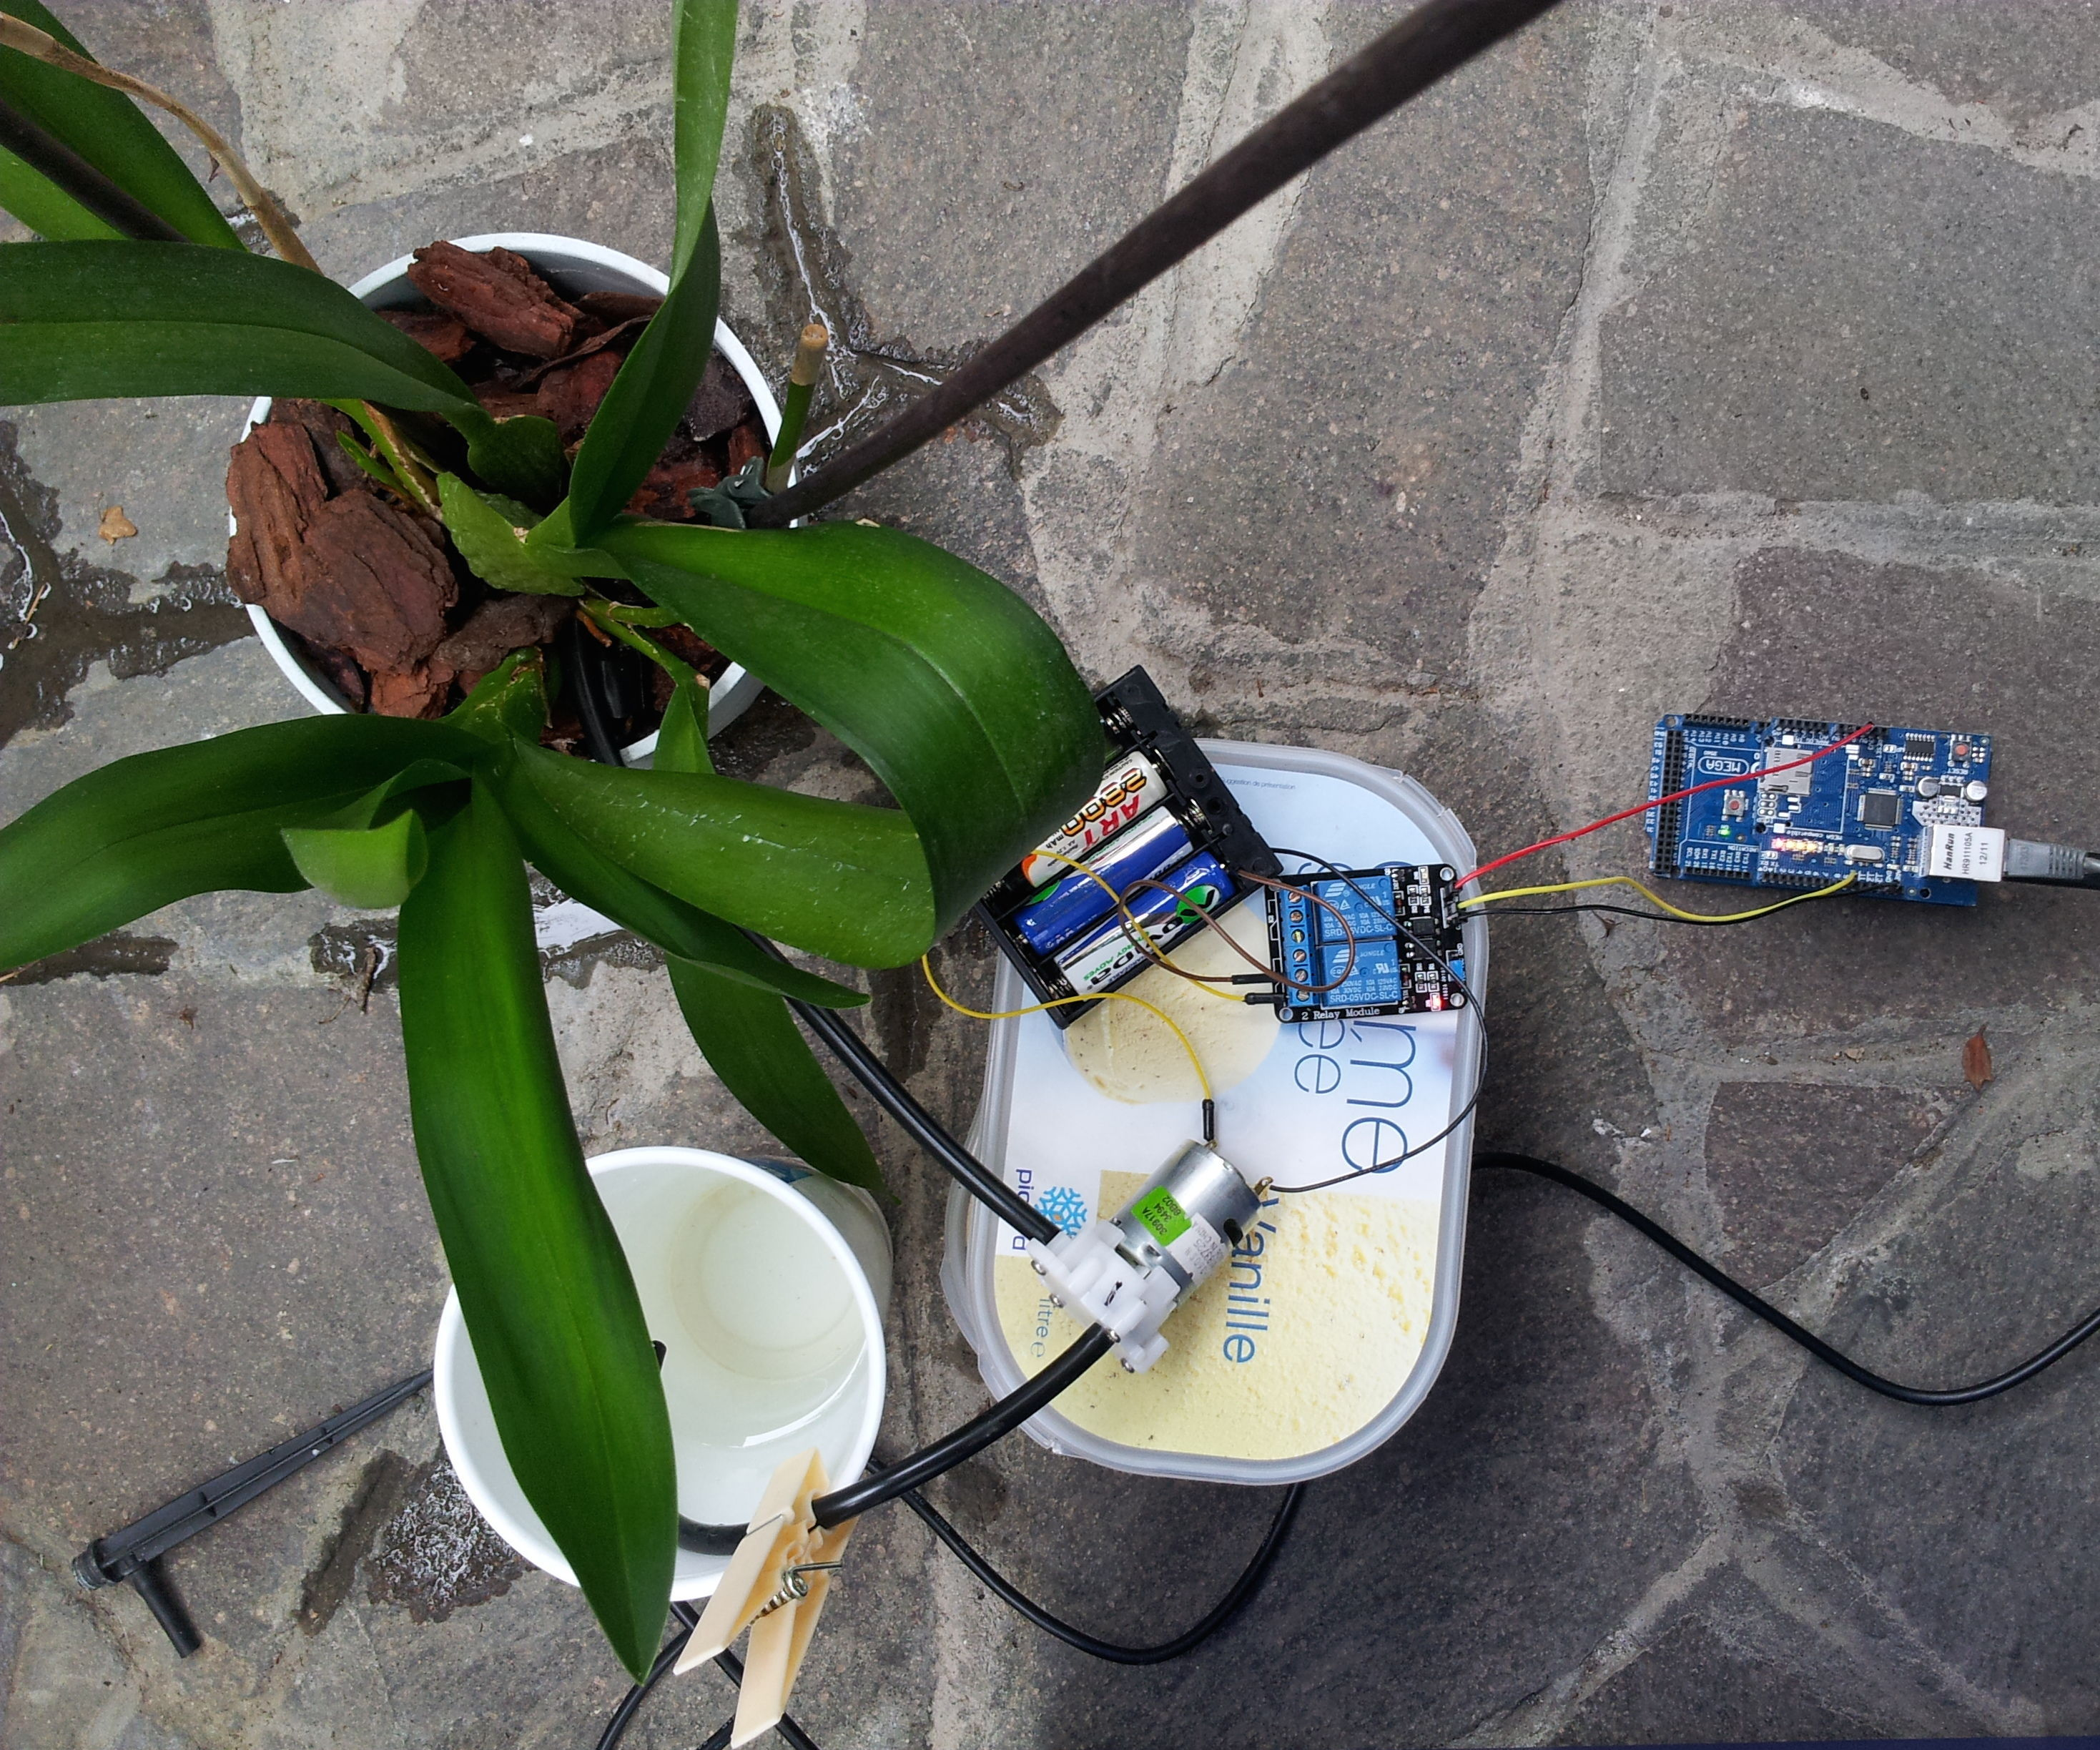 Arduino water system to wet your plant